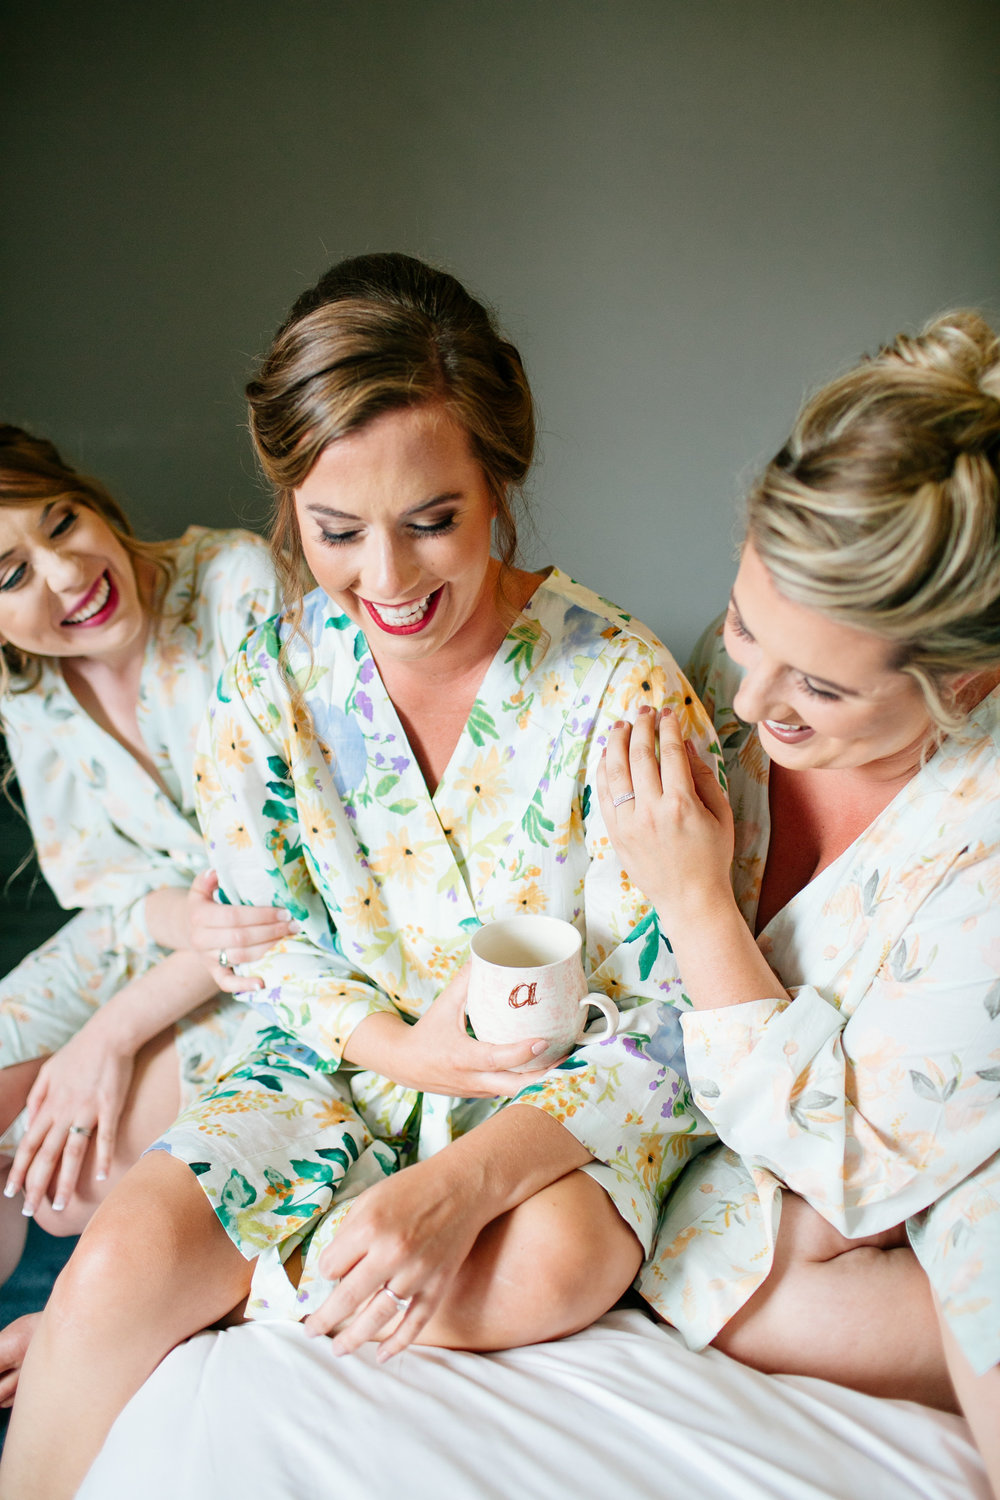 How to Capture Your Getting Ready Photos | Leah Fontaine Photography | Getting ready photos with matching bridesmaids robes